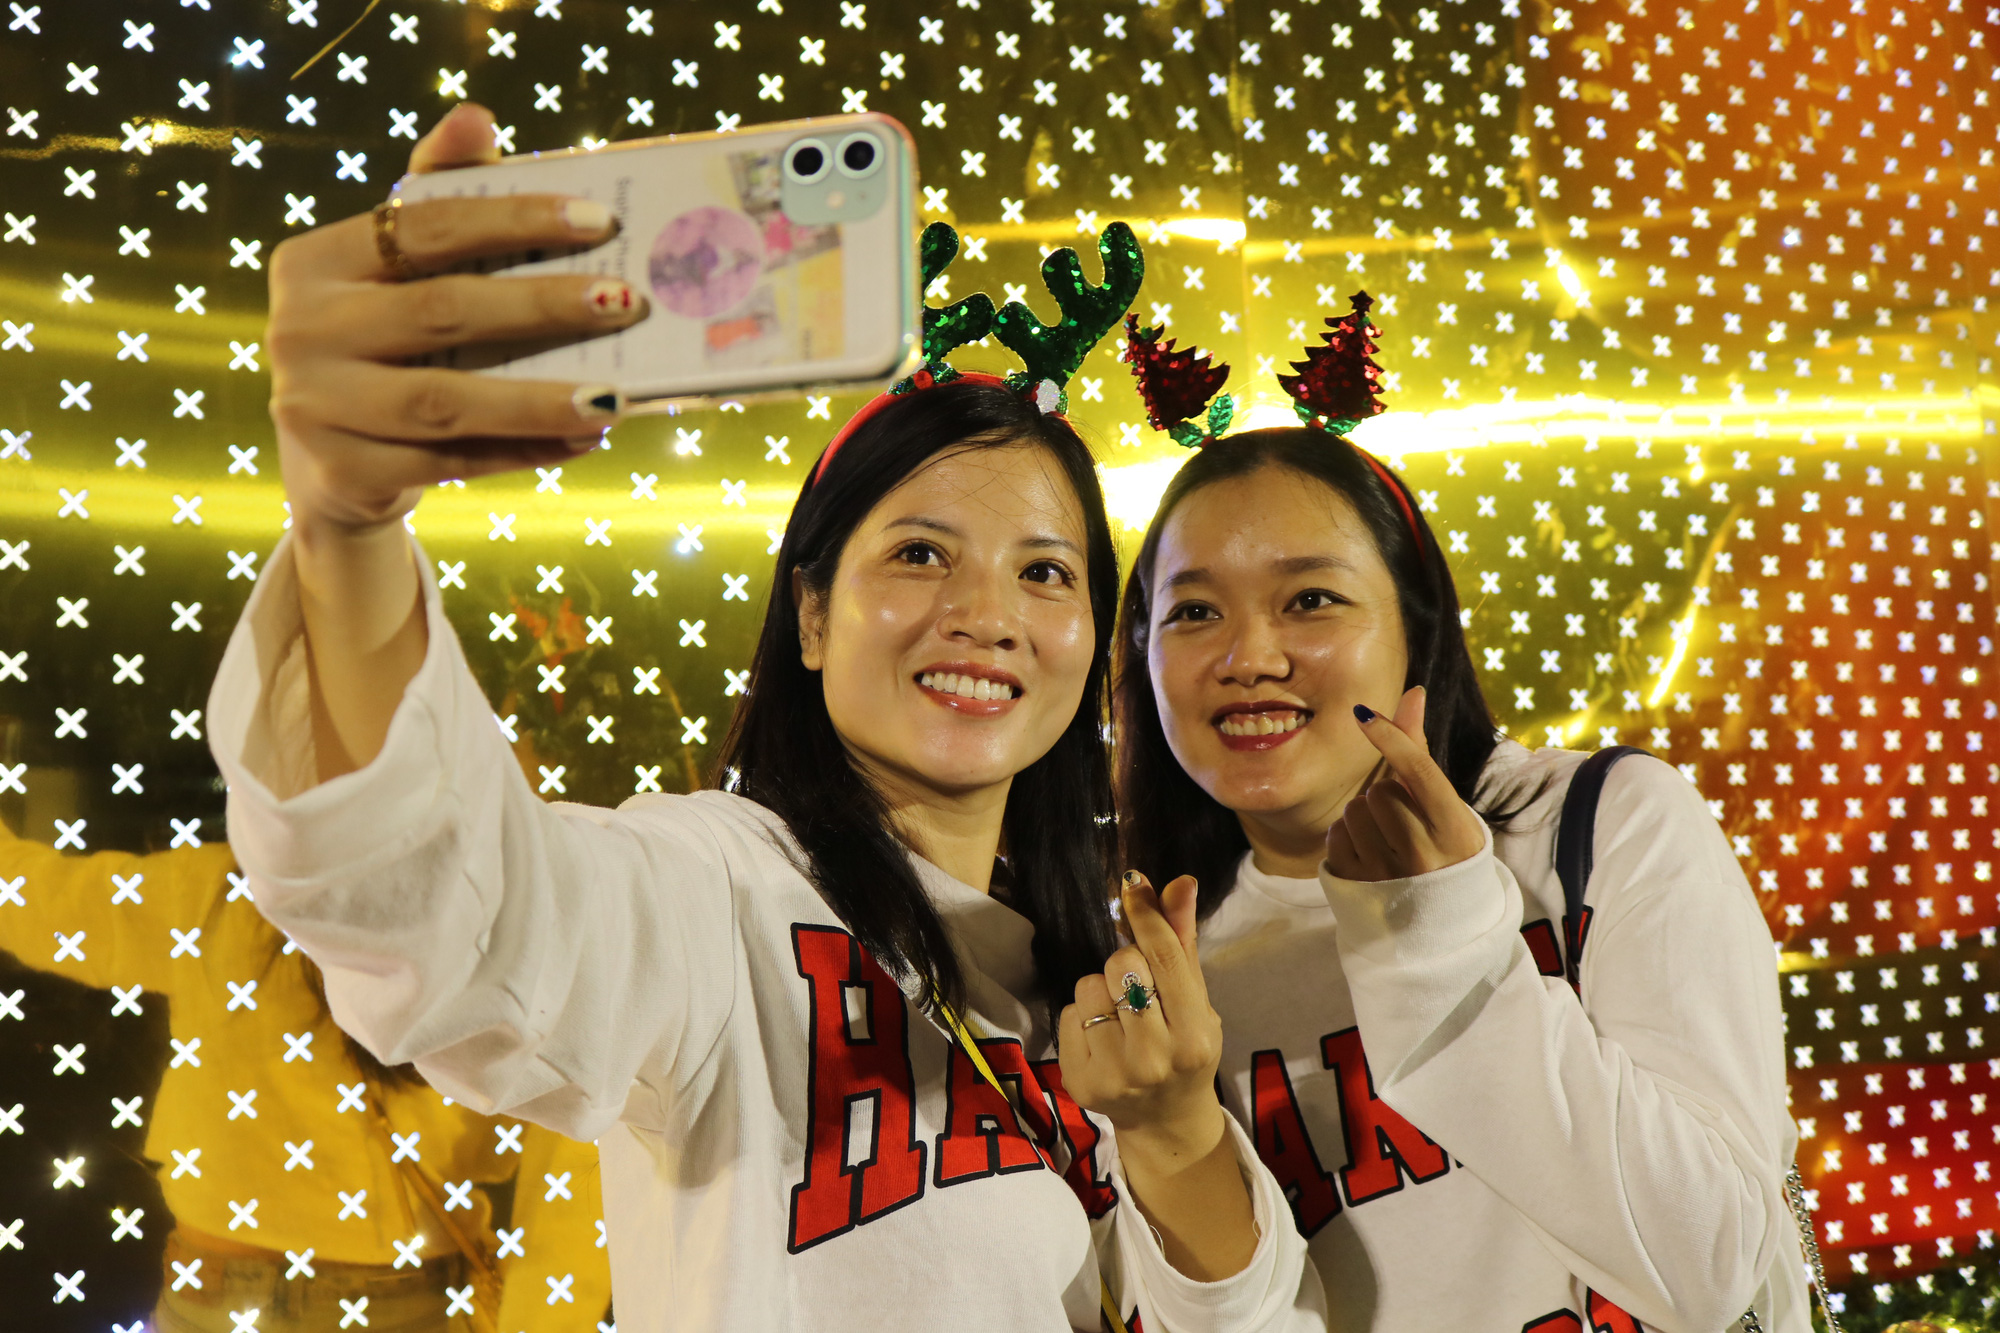 Two girls take a selfie in front of Landmark 81 Tower in Binh Thanh District. Photo: Hoang An / Tuoi Tre